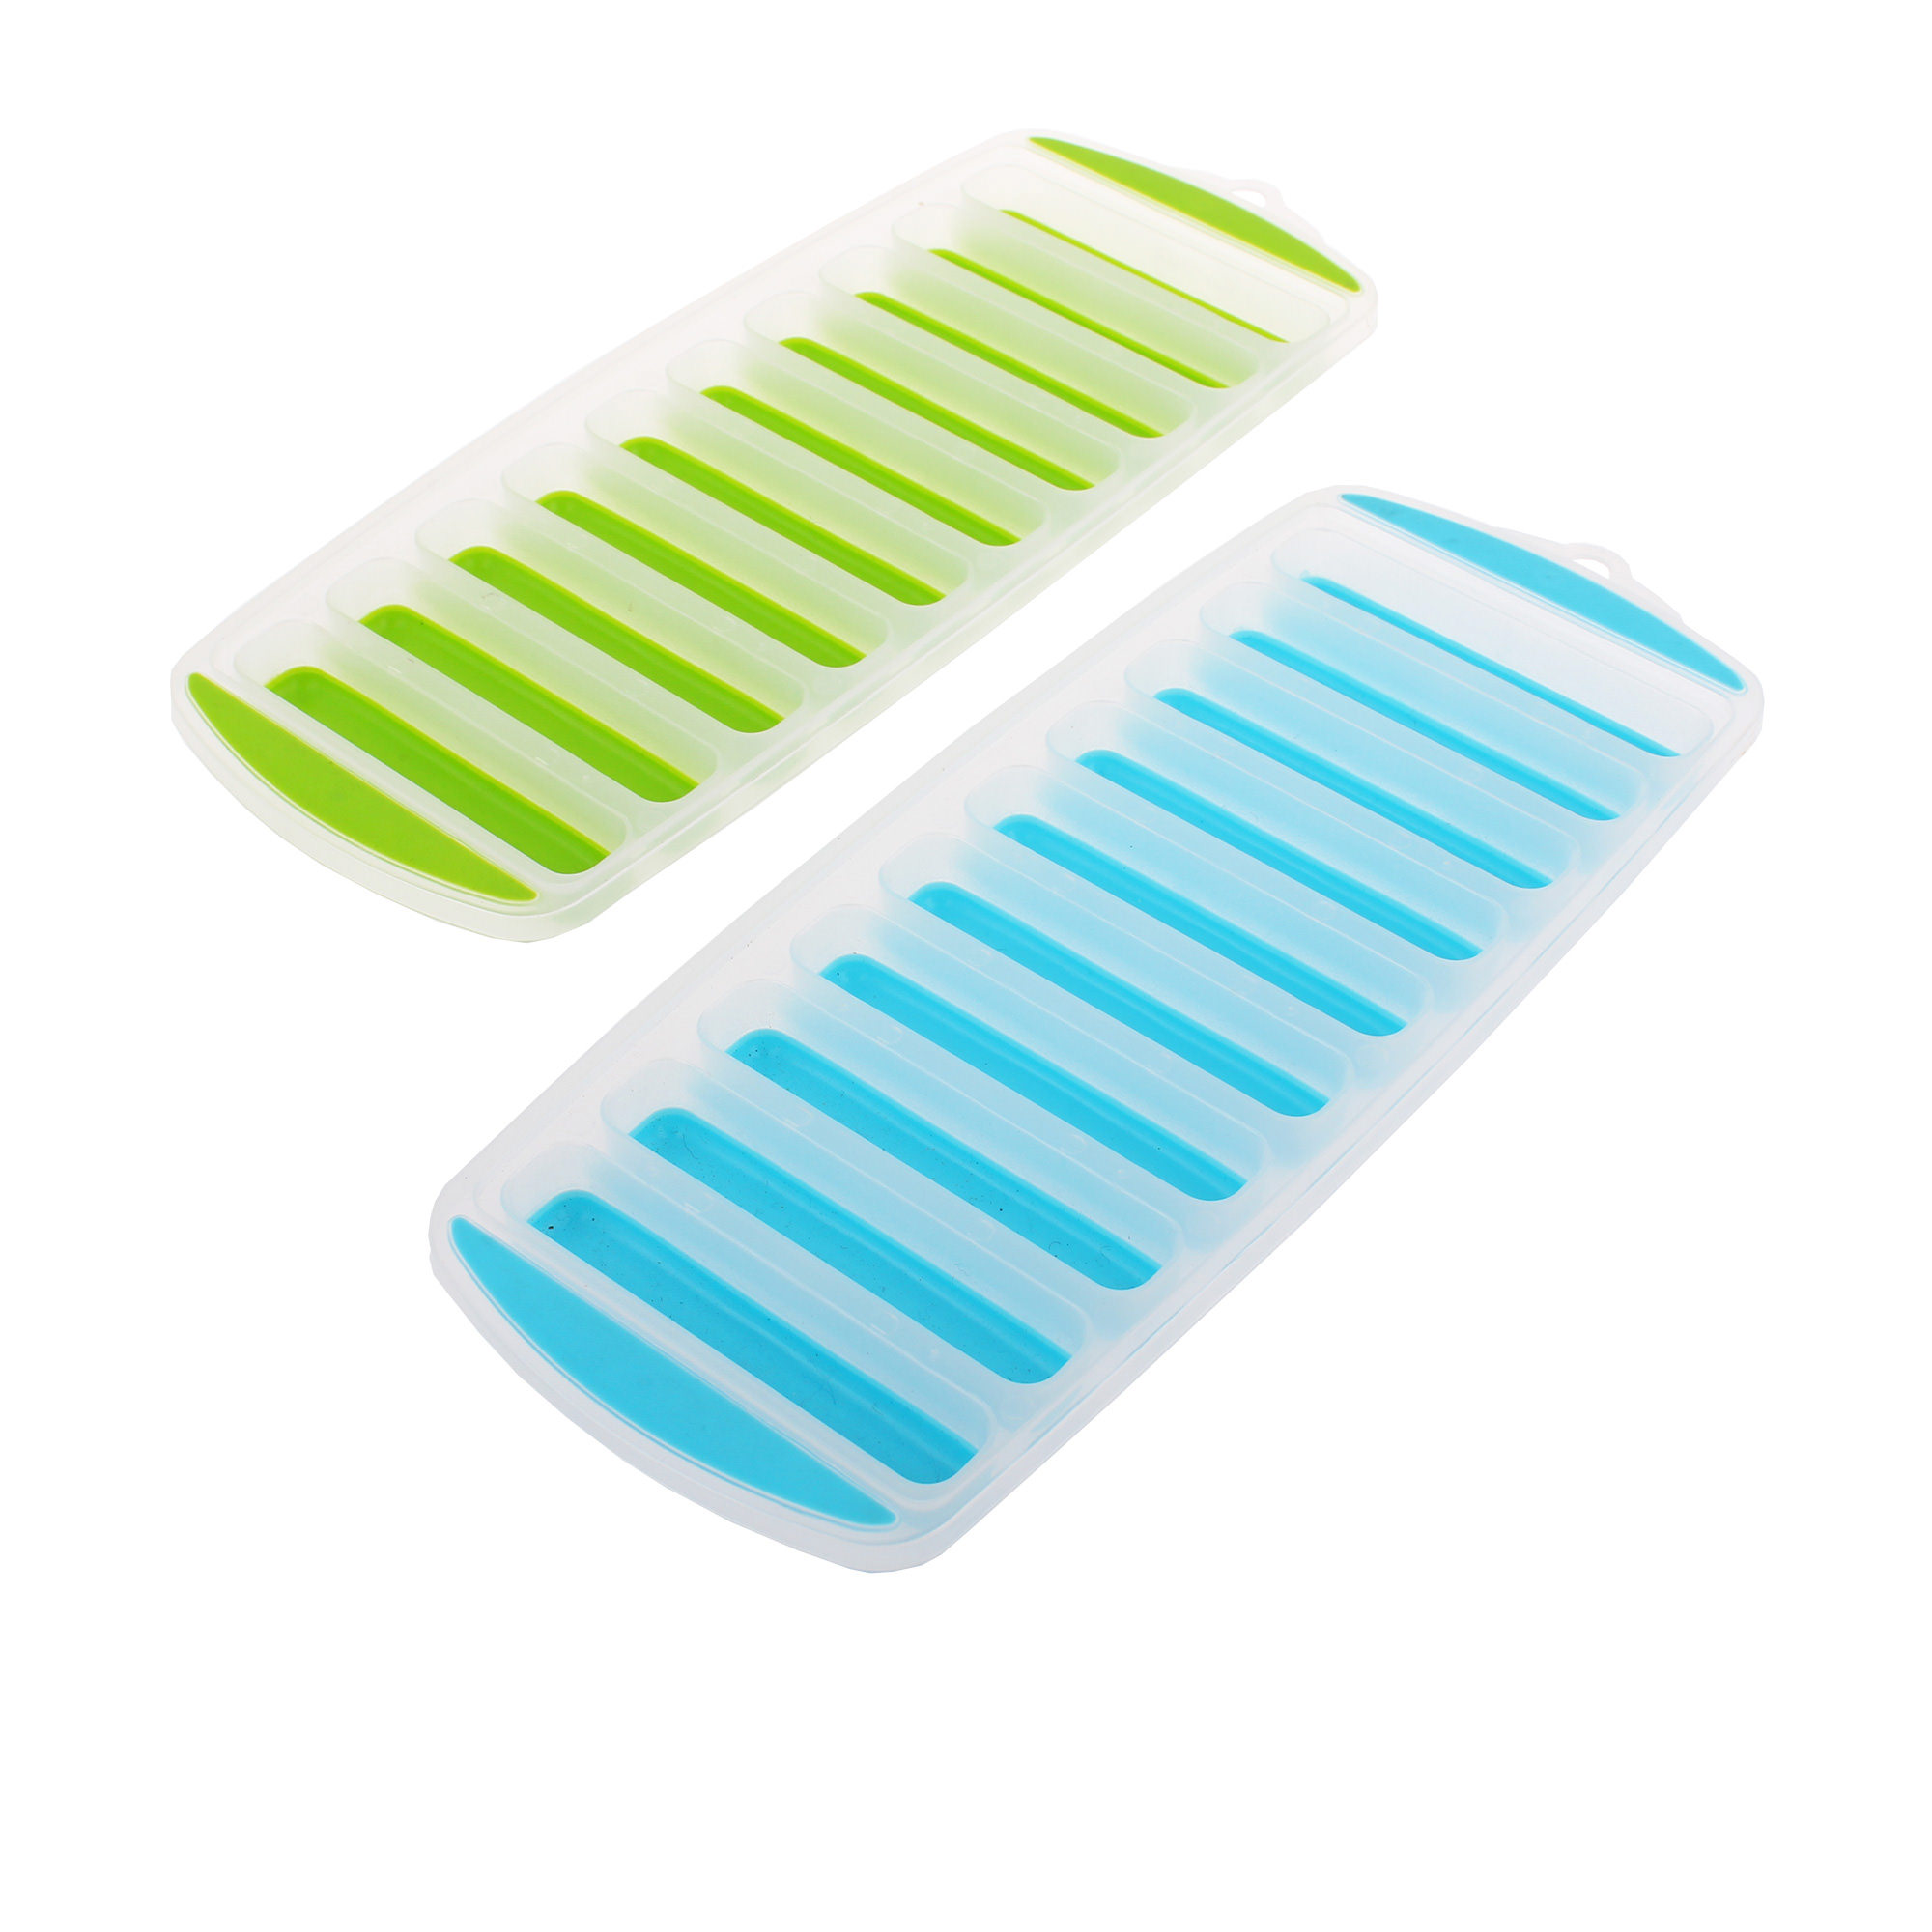 Appetito Easy Release 10 Cube Stick Ice Tray Set of 2